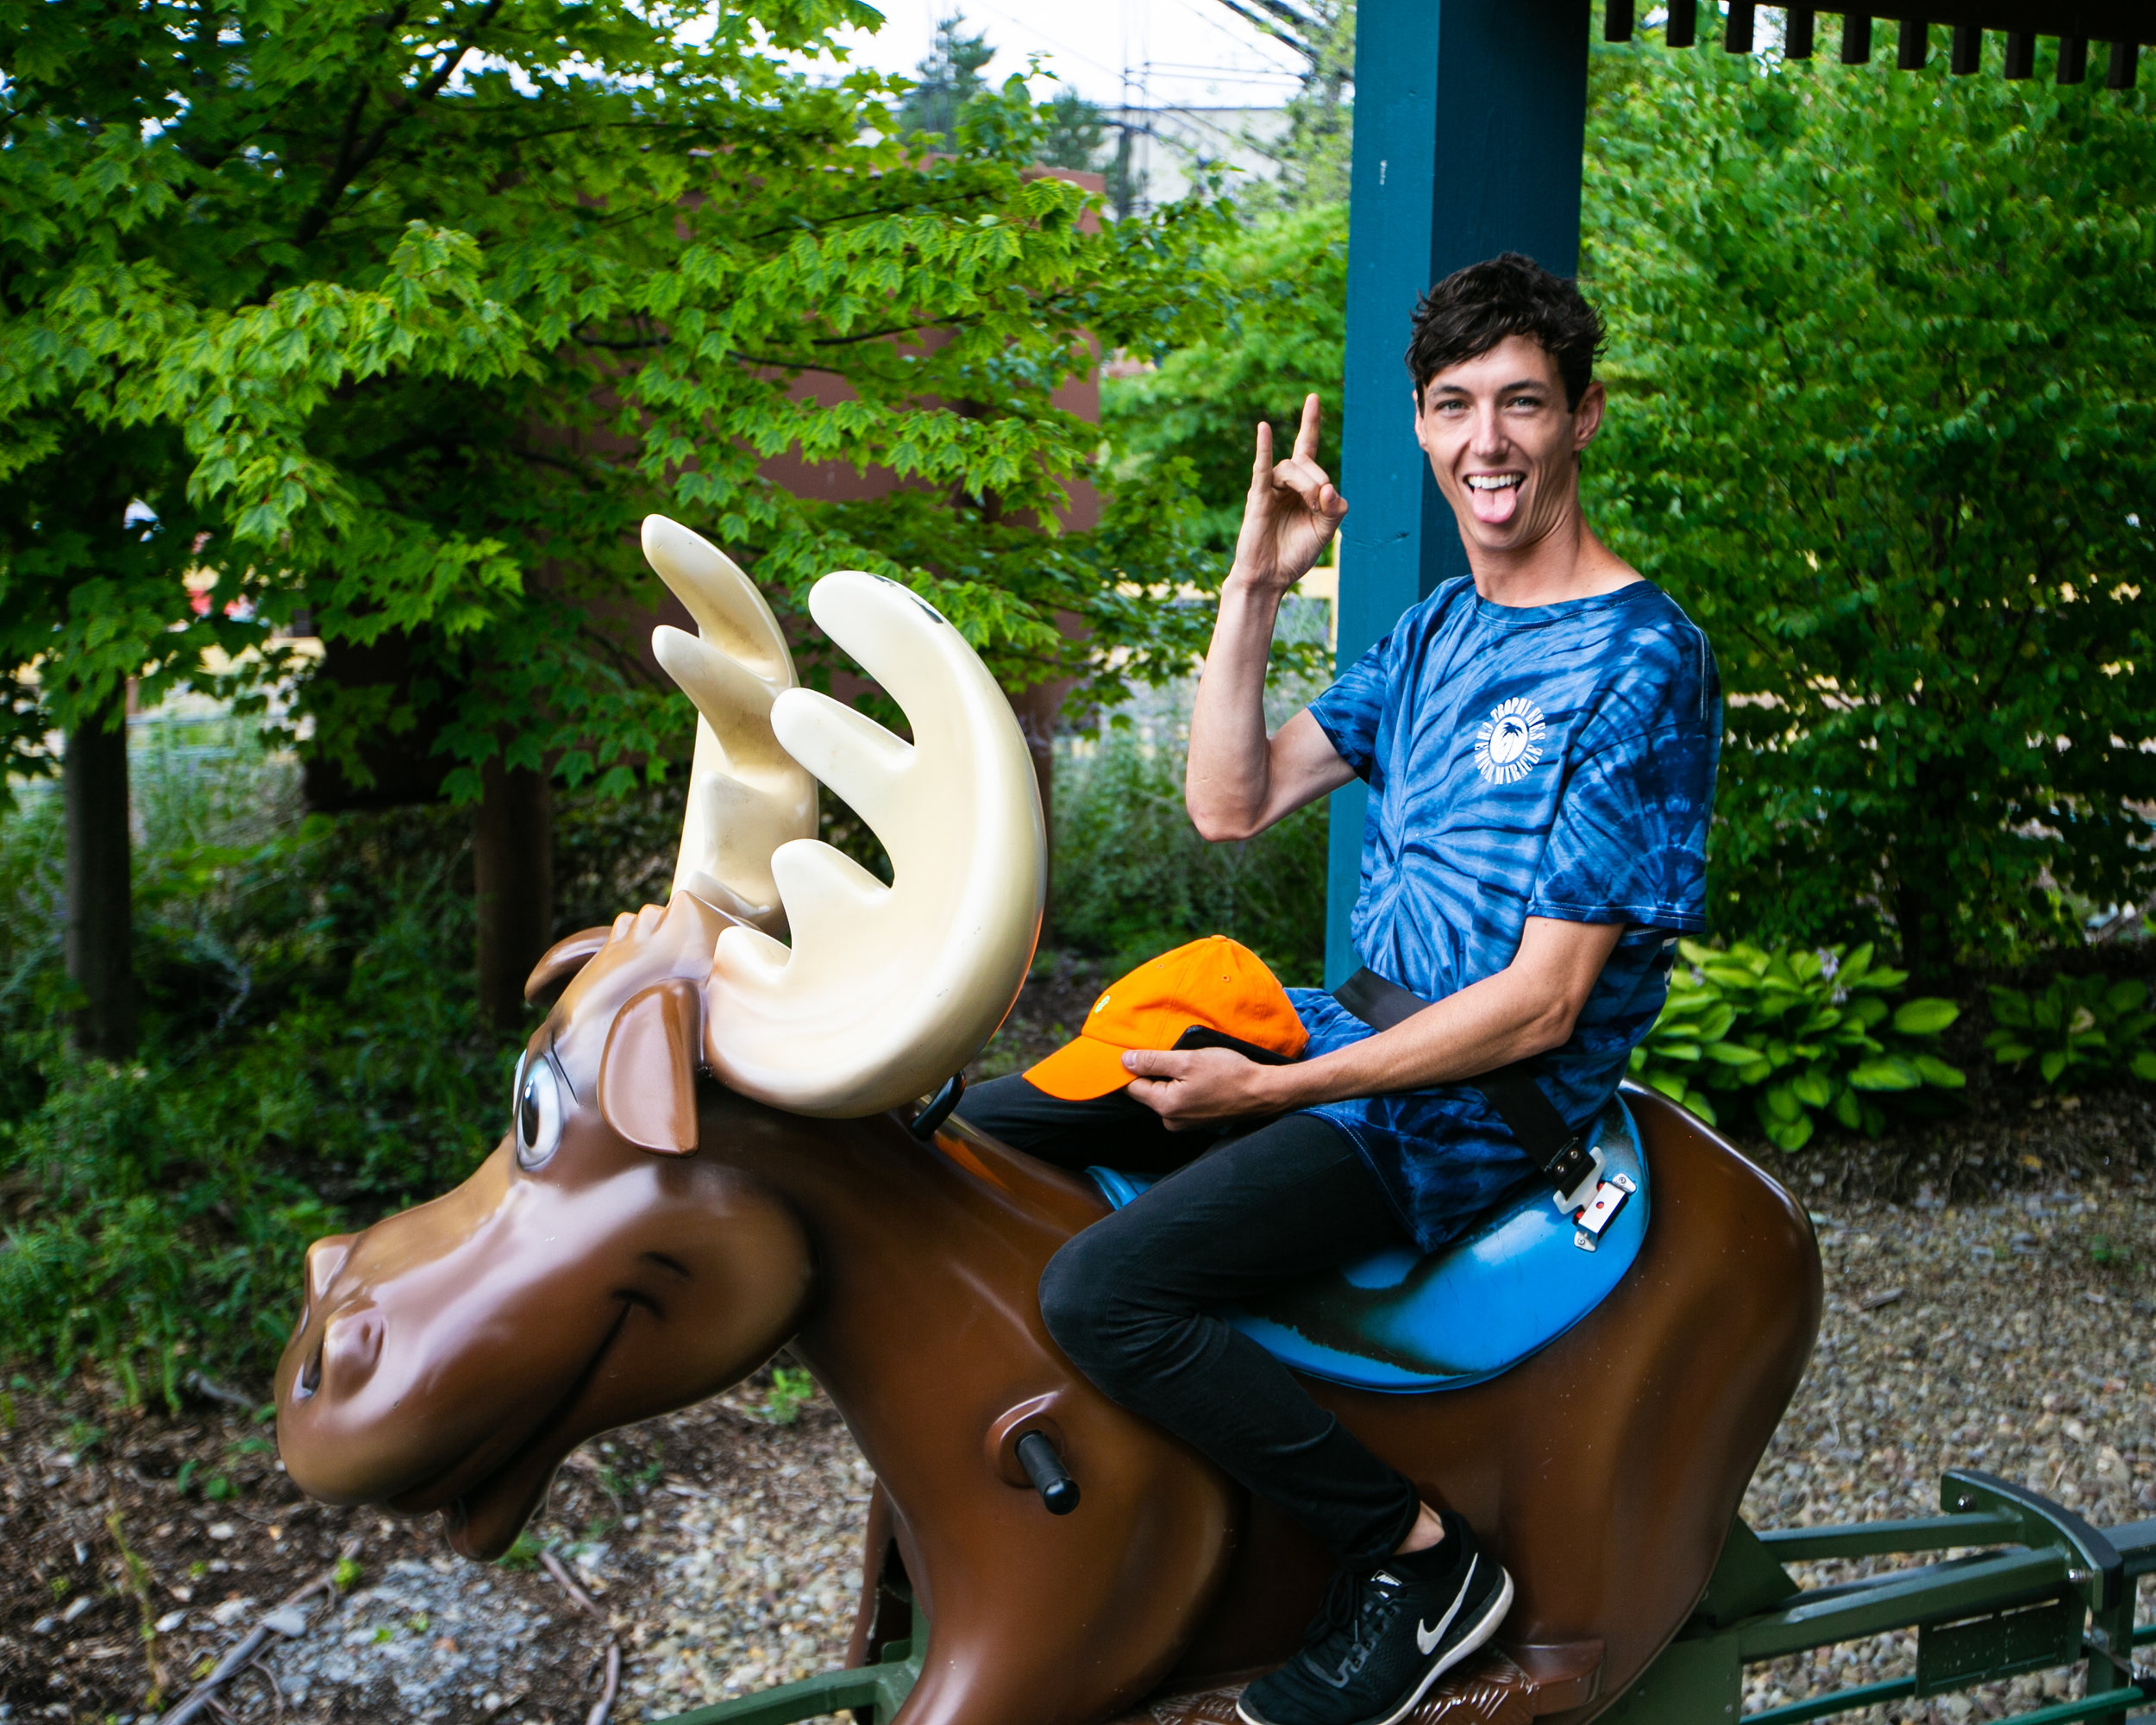 I really never thought I'd have a photo of Josh from With Confidence on a moose in my possession-- is this the peak of my career?